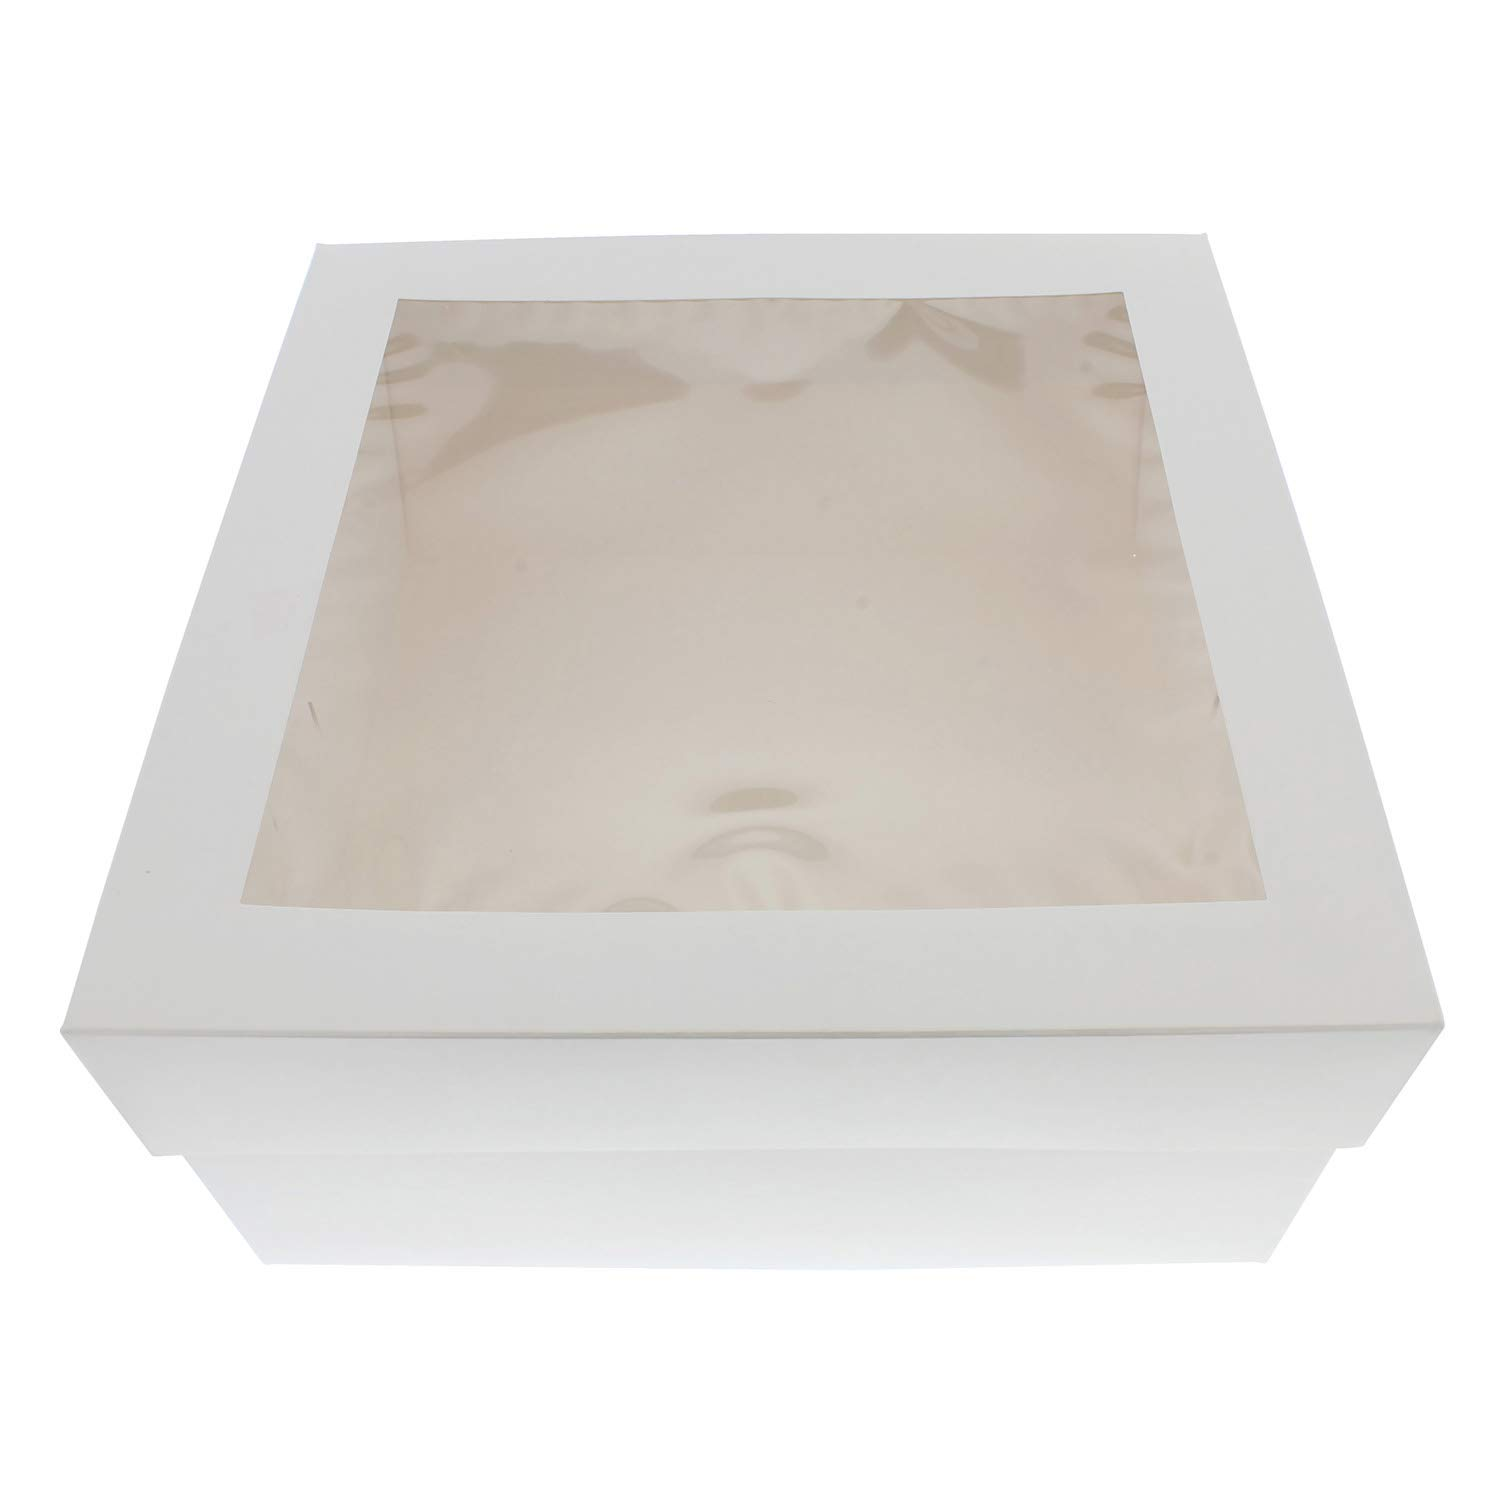 "SpecialT | Cake Boxes with Window 25pk 12"" x 12"" x 6"" Inch White Bakery Boxes, Disposable Cake Containers, Dessert Boxes"